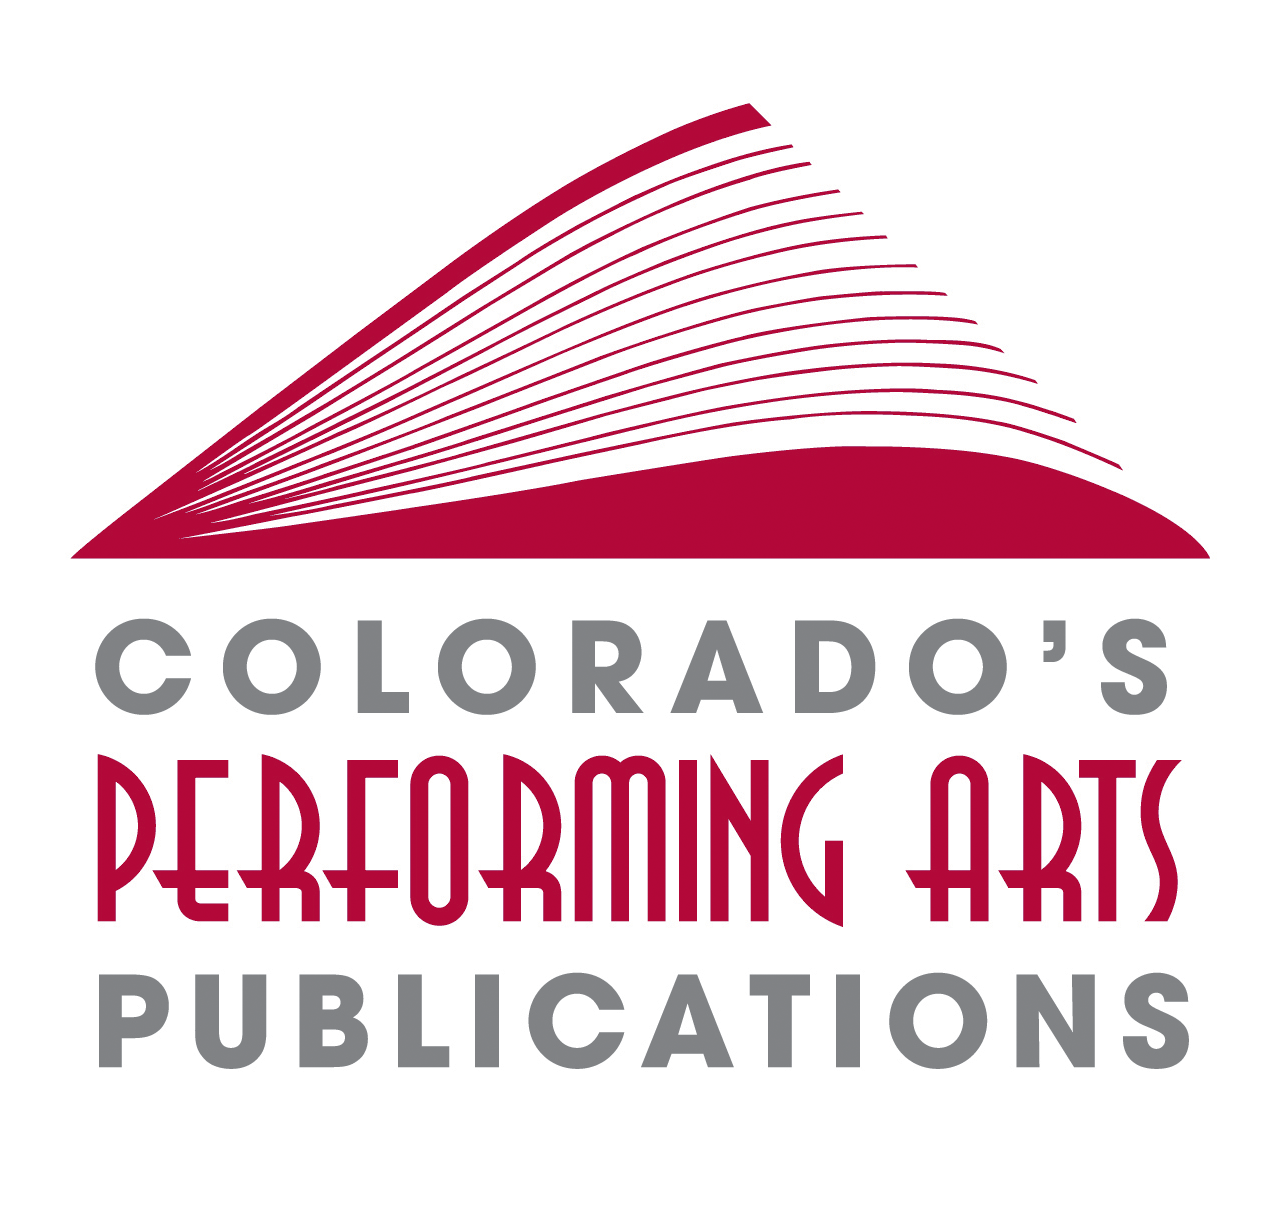 Colorado's Performing Arts Publications